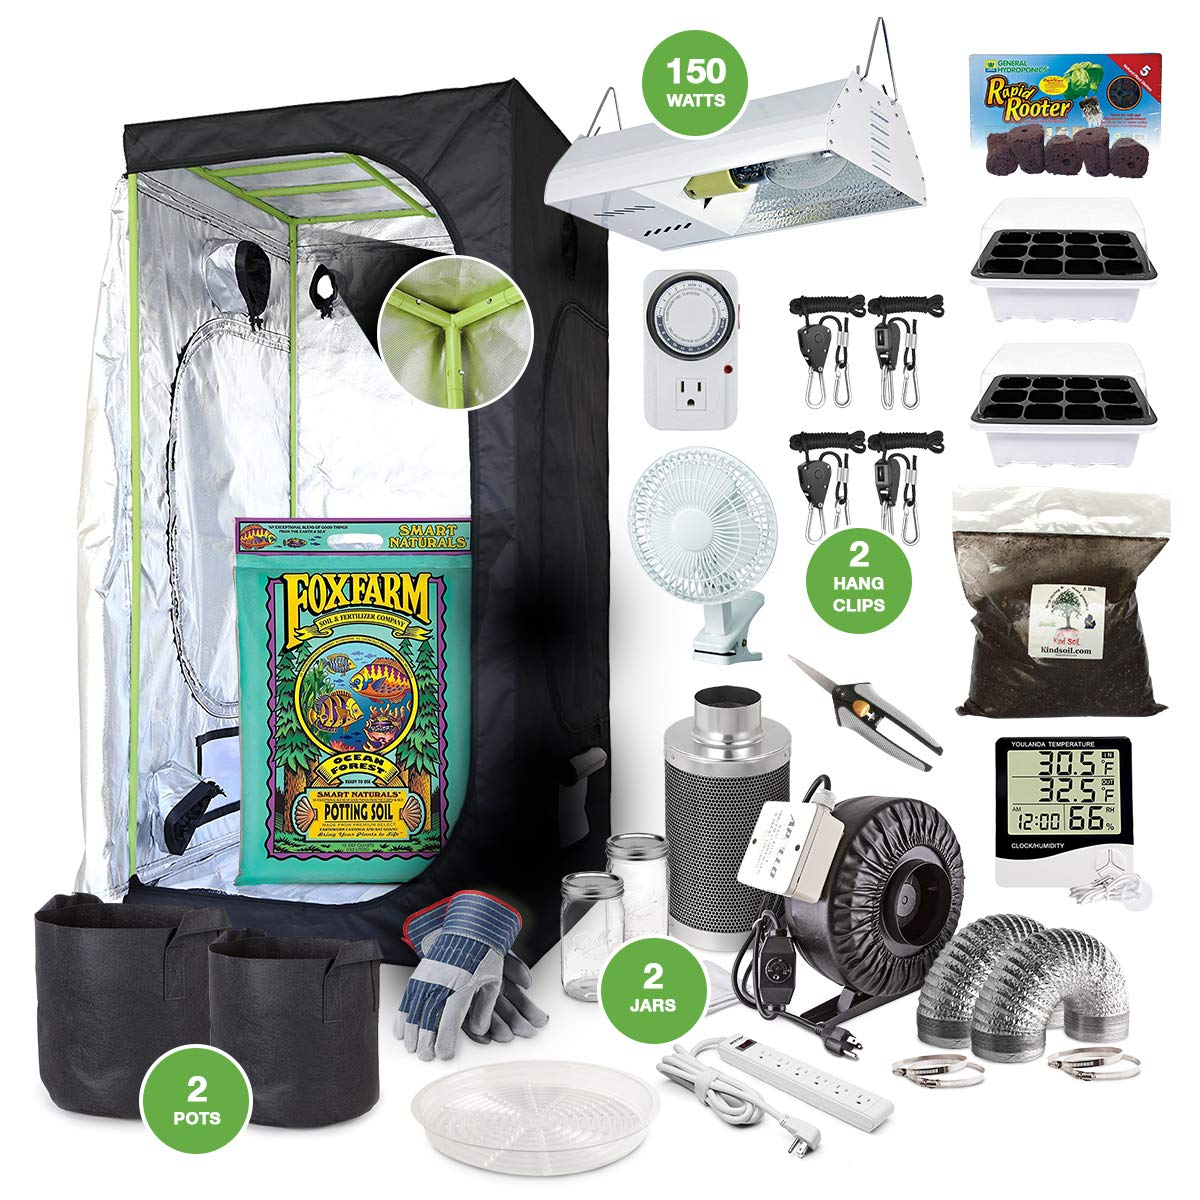 The Bud Grower Complete Indoor Grow Kit with Fan, Soil, 24 x24 x60 Hut – Everything You Need to Grow Plants Inside